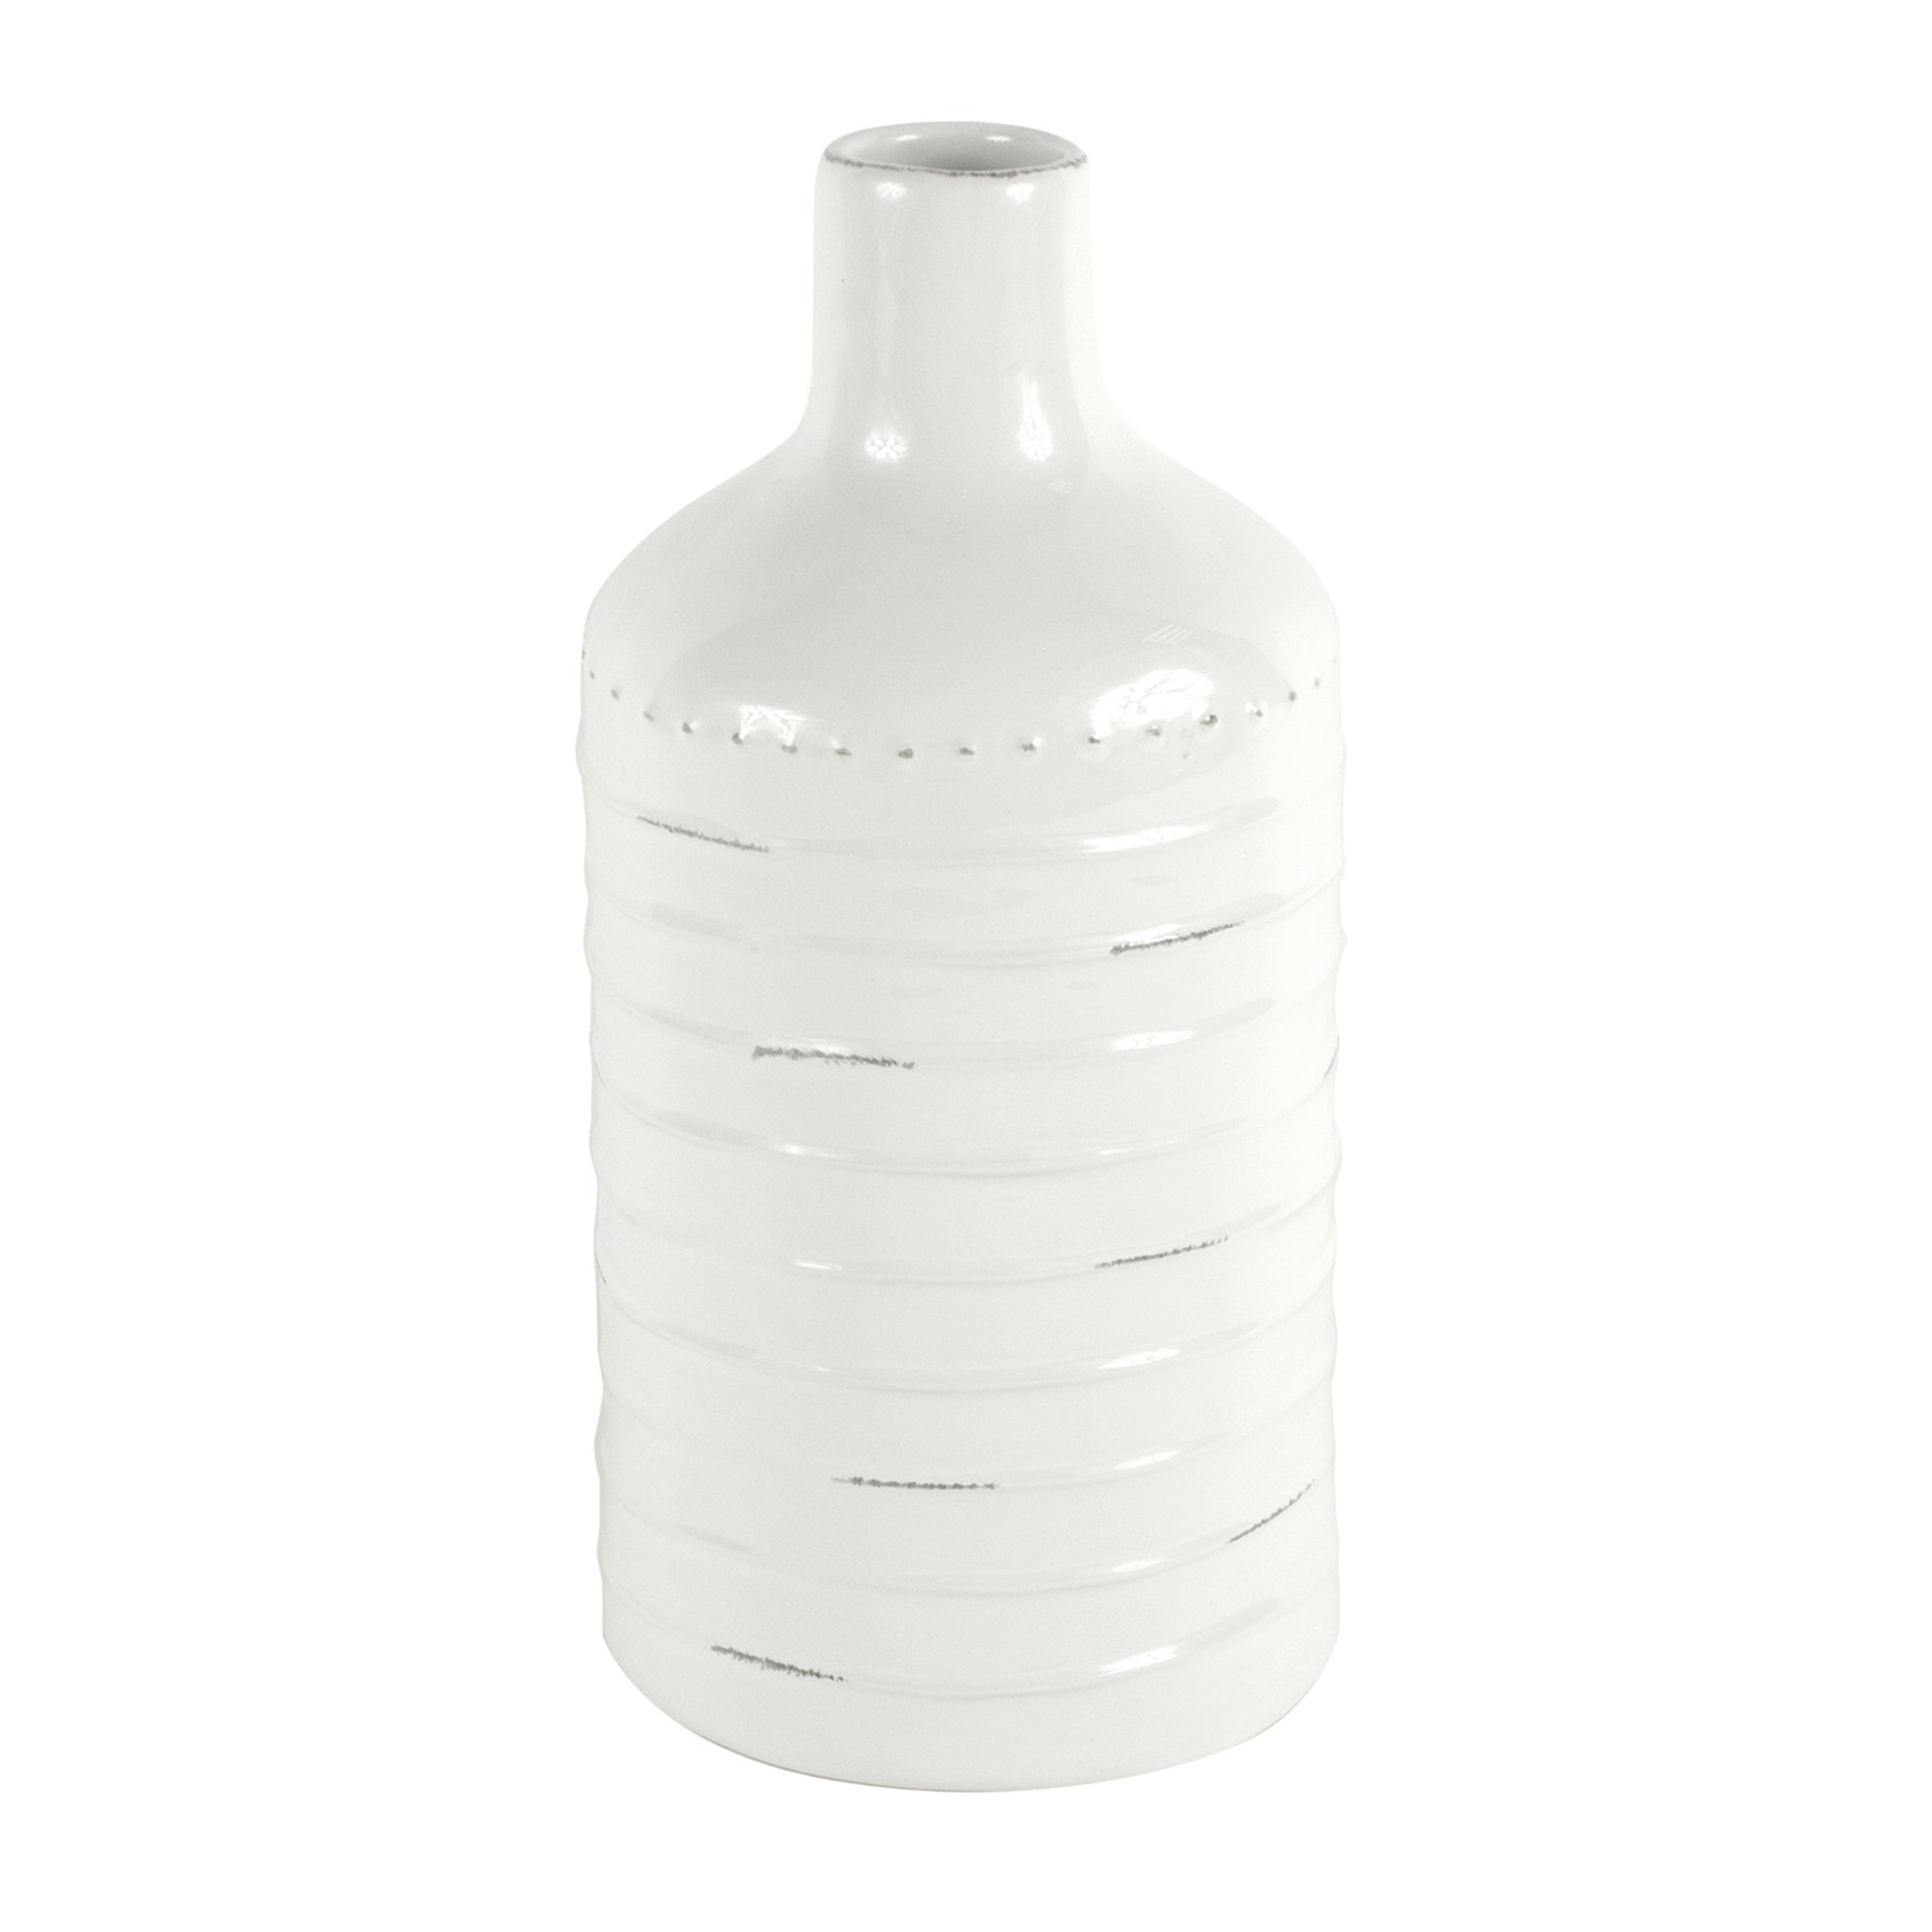 Hamptons Collection Small Bottle Vase